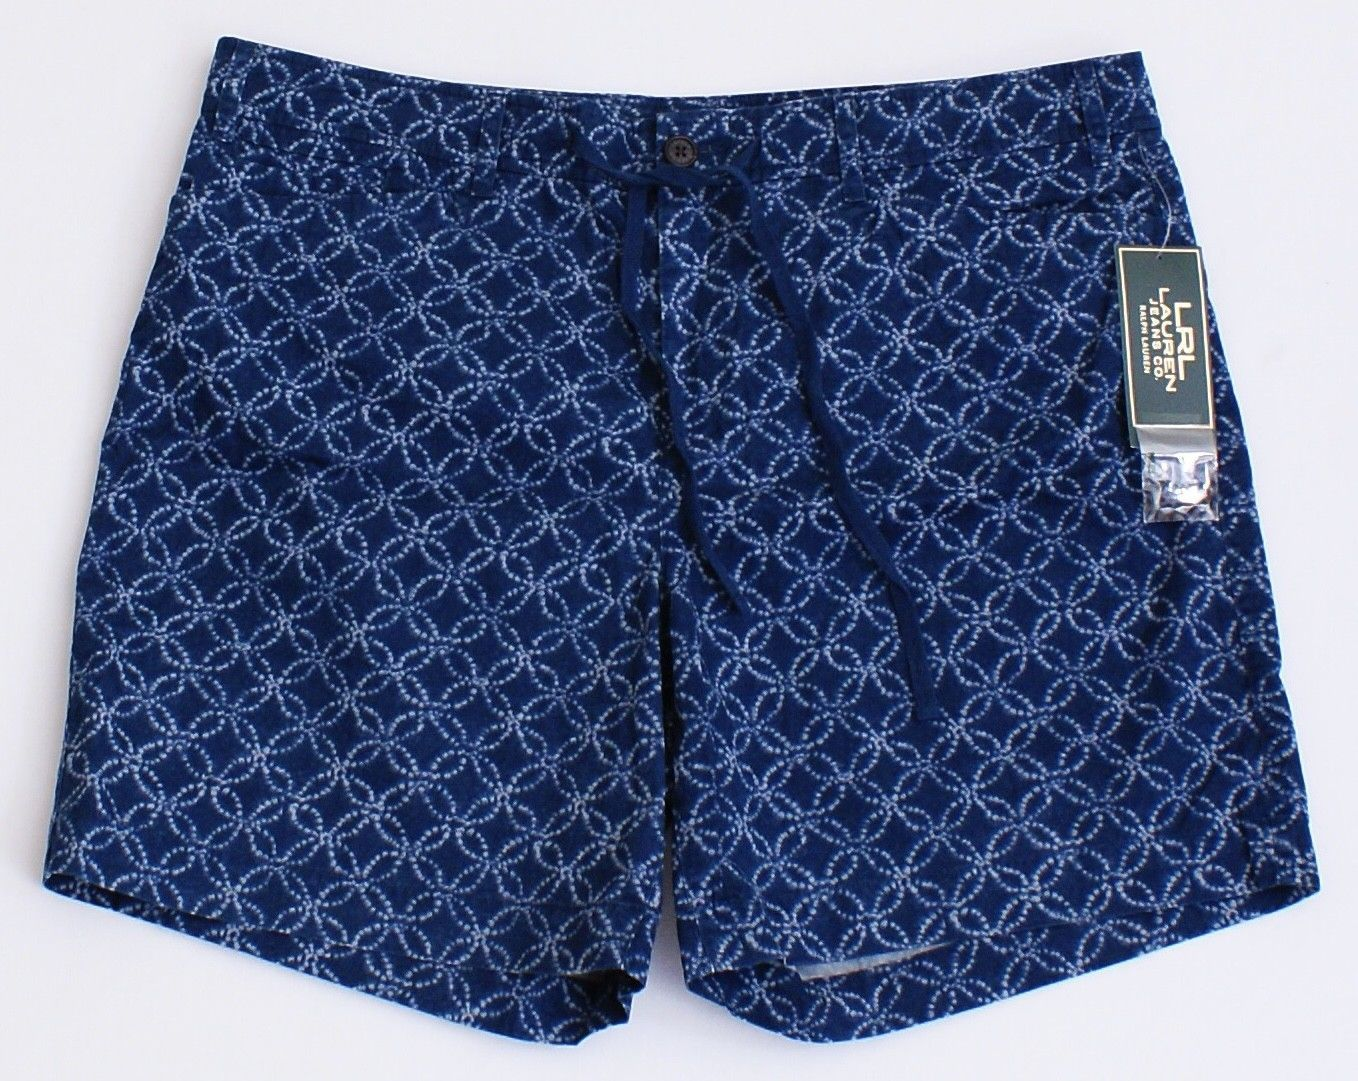 Primary image for Lauren Jeans Co. Ralph Lauren Blue Pattern Casual Shorts Women's NWT